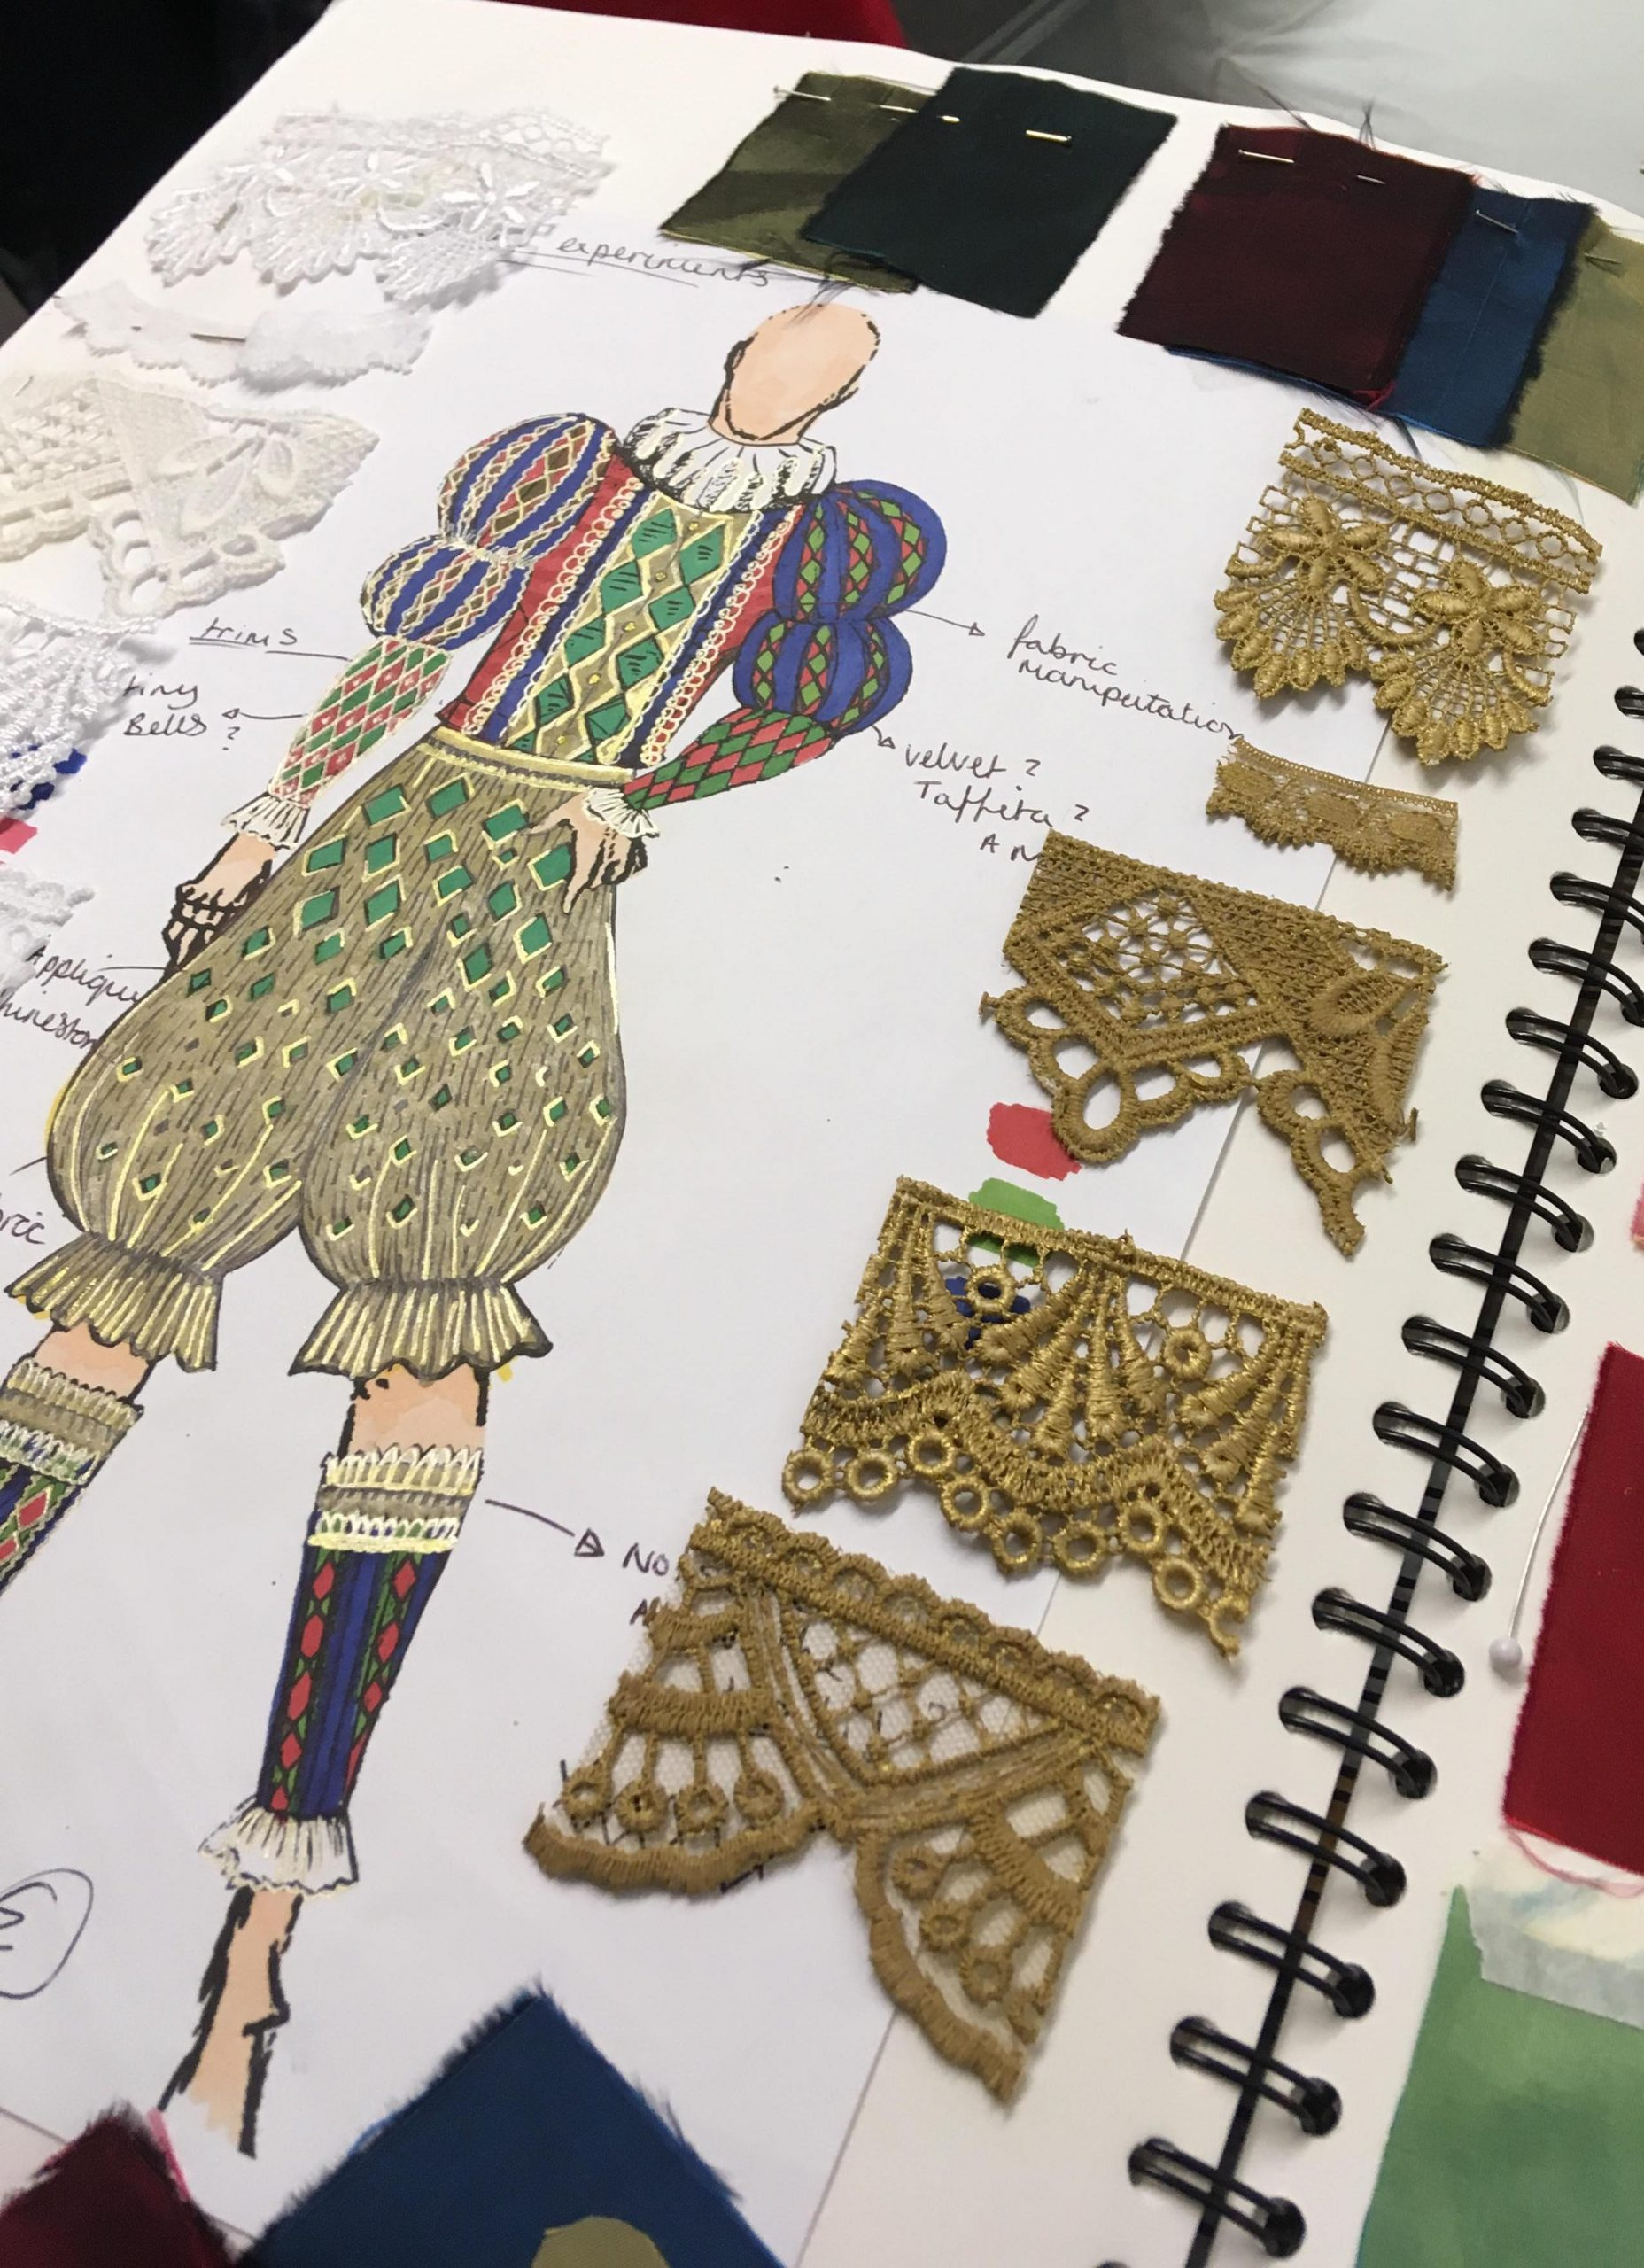 Final costume design and samples